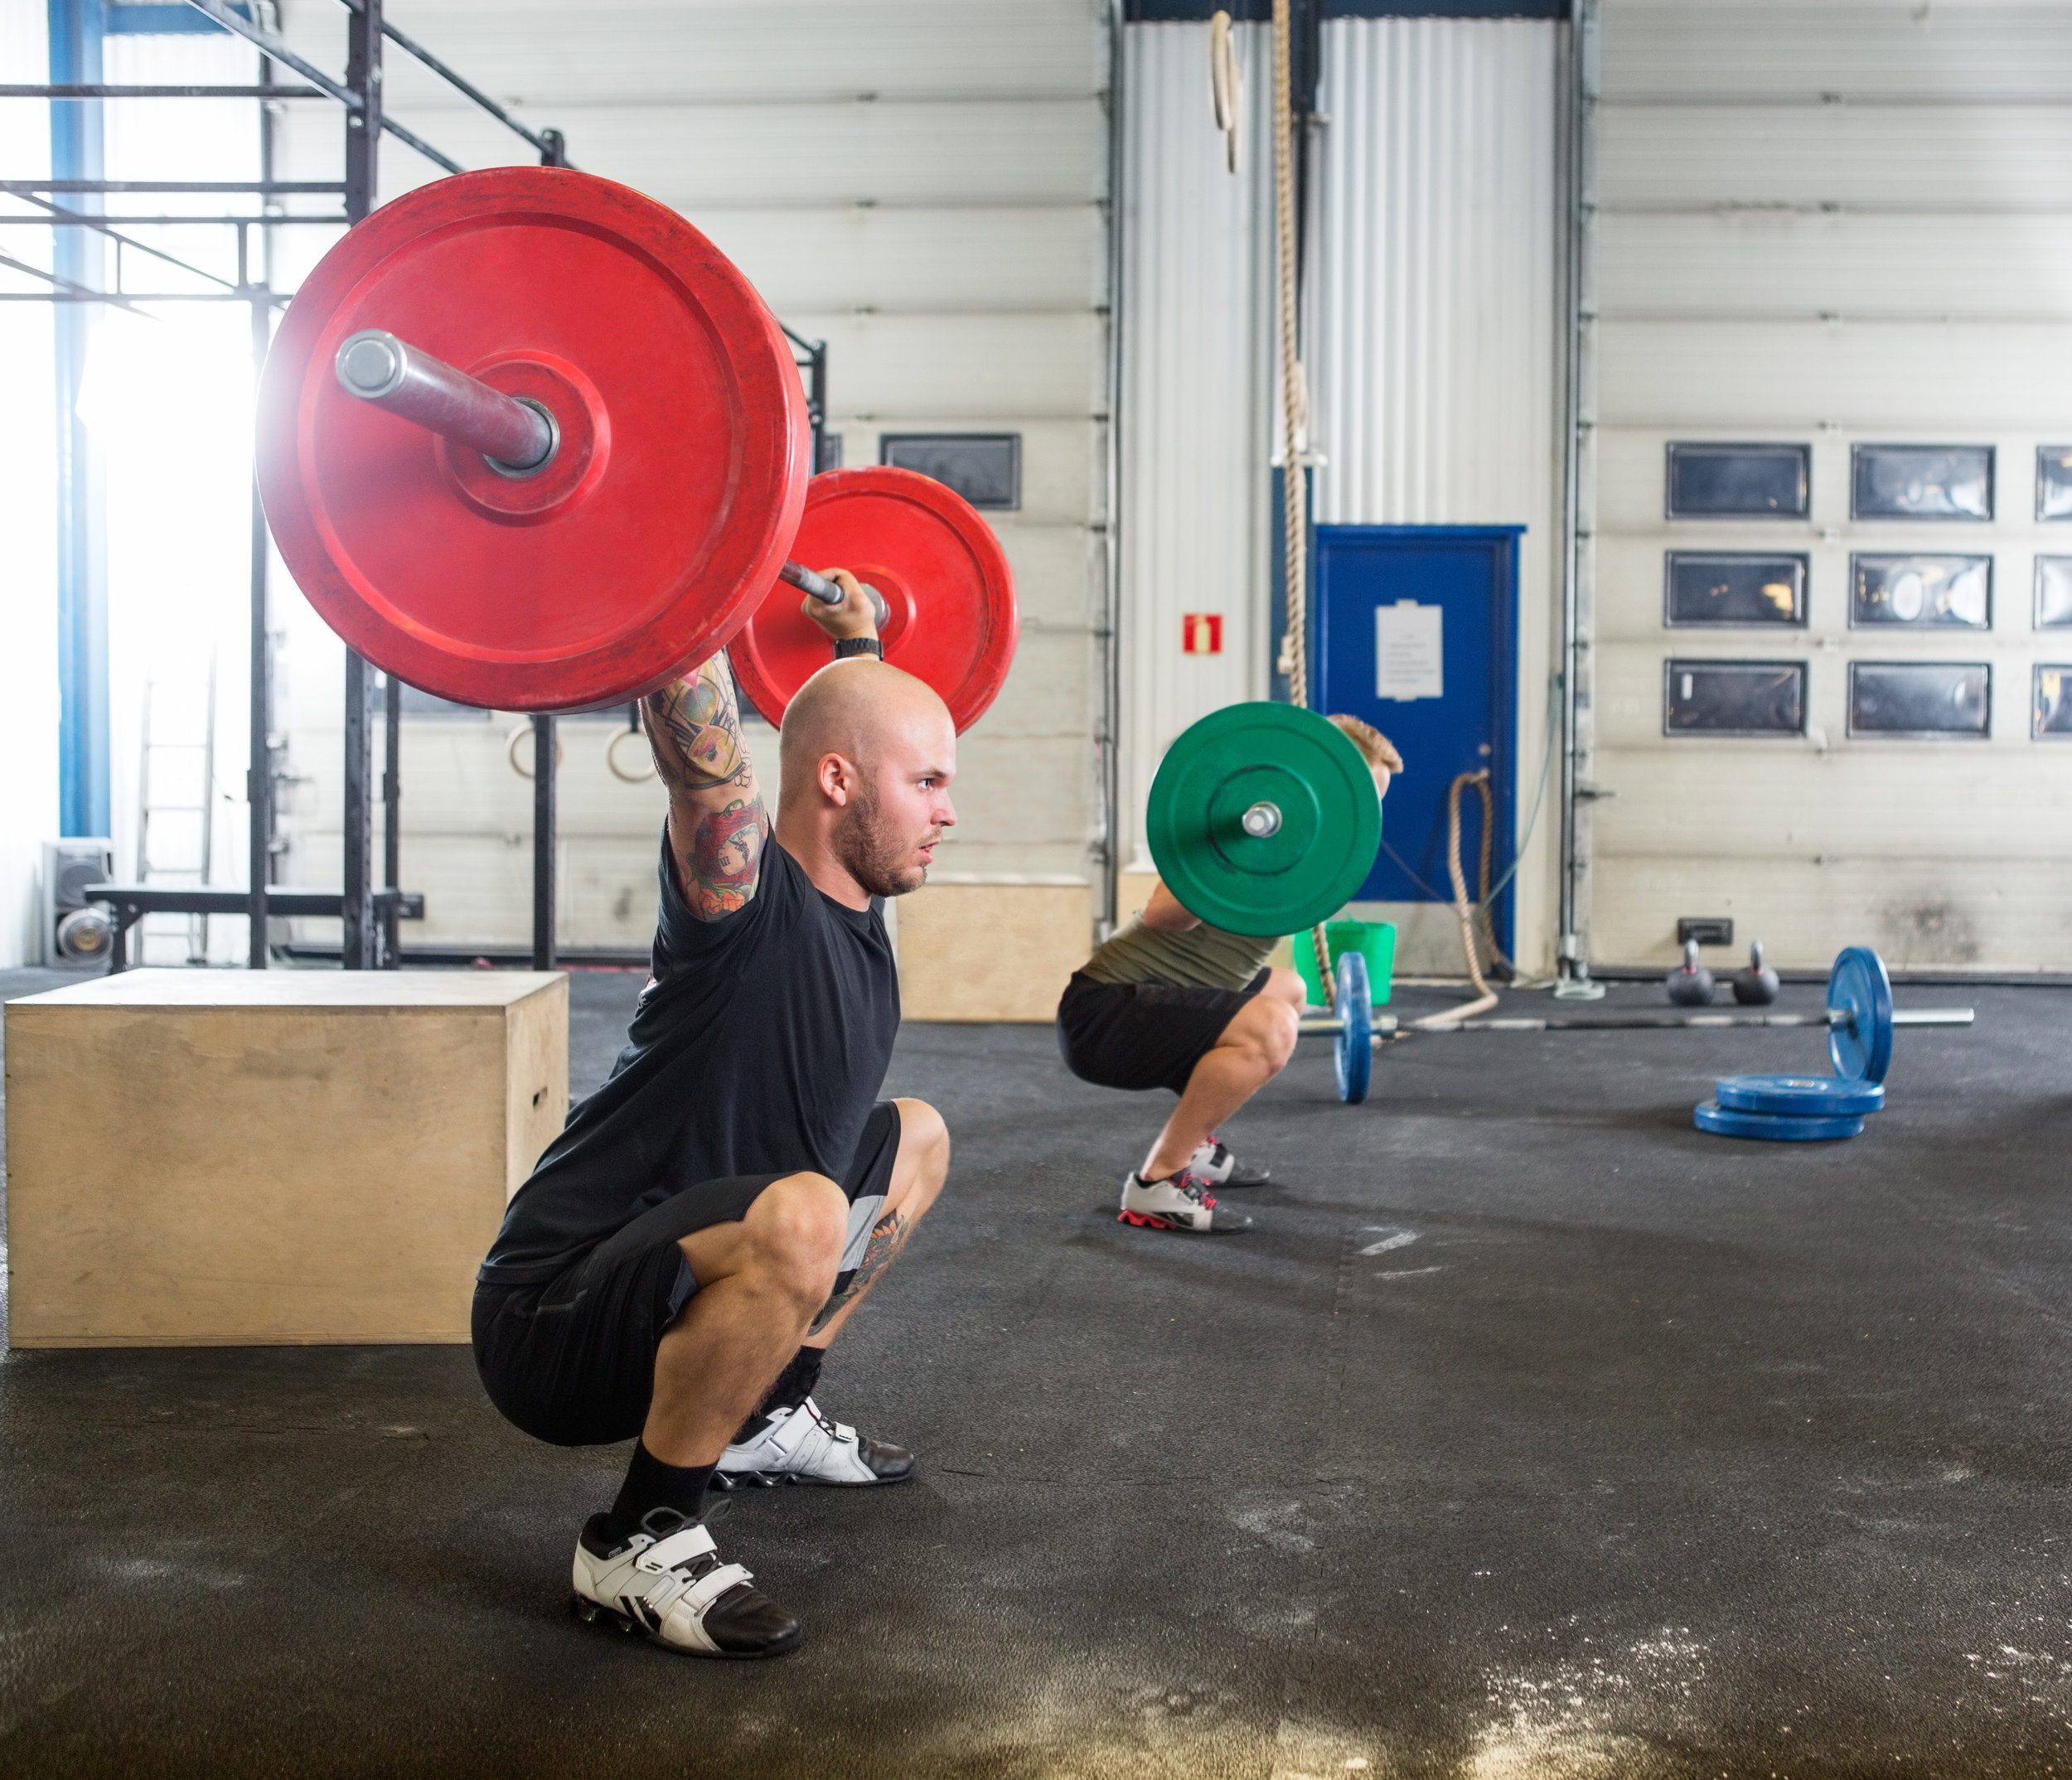 Physio for CrossFit Athletes - Performance, pain, & injury expertise by a Doc that actually understands and does CrossFit